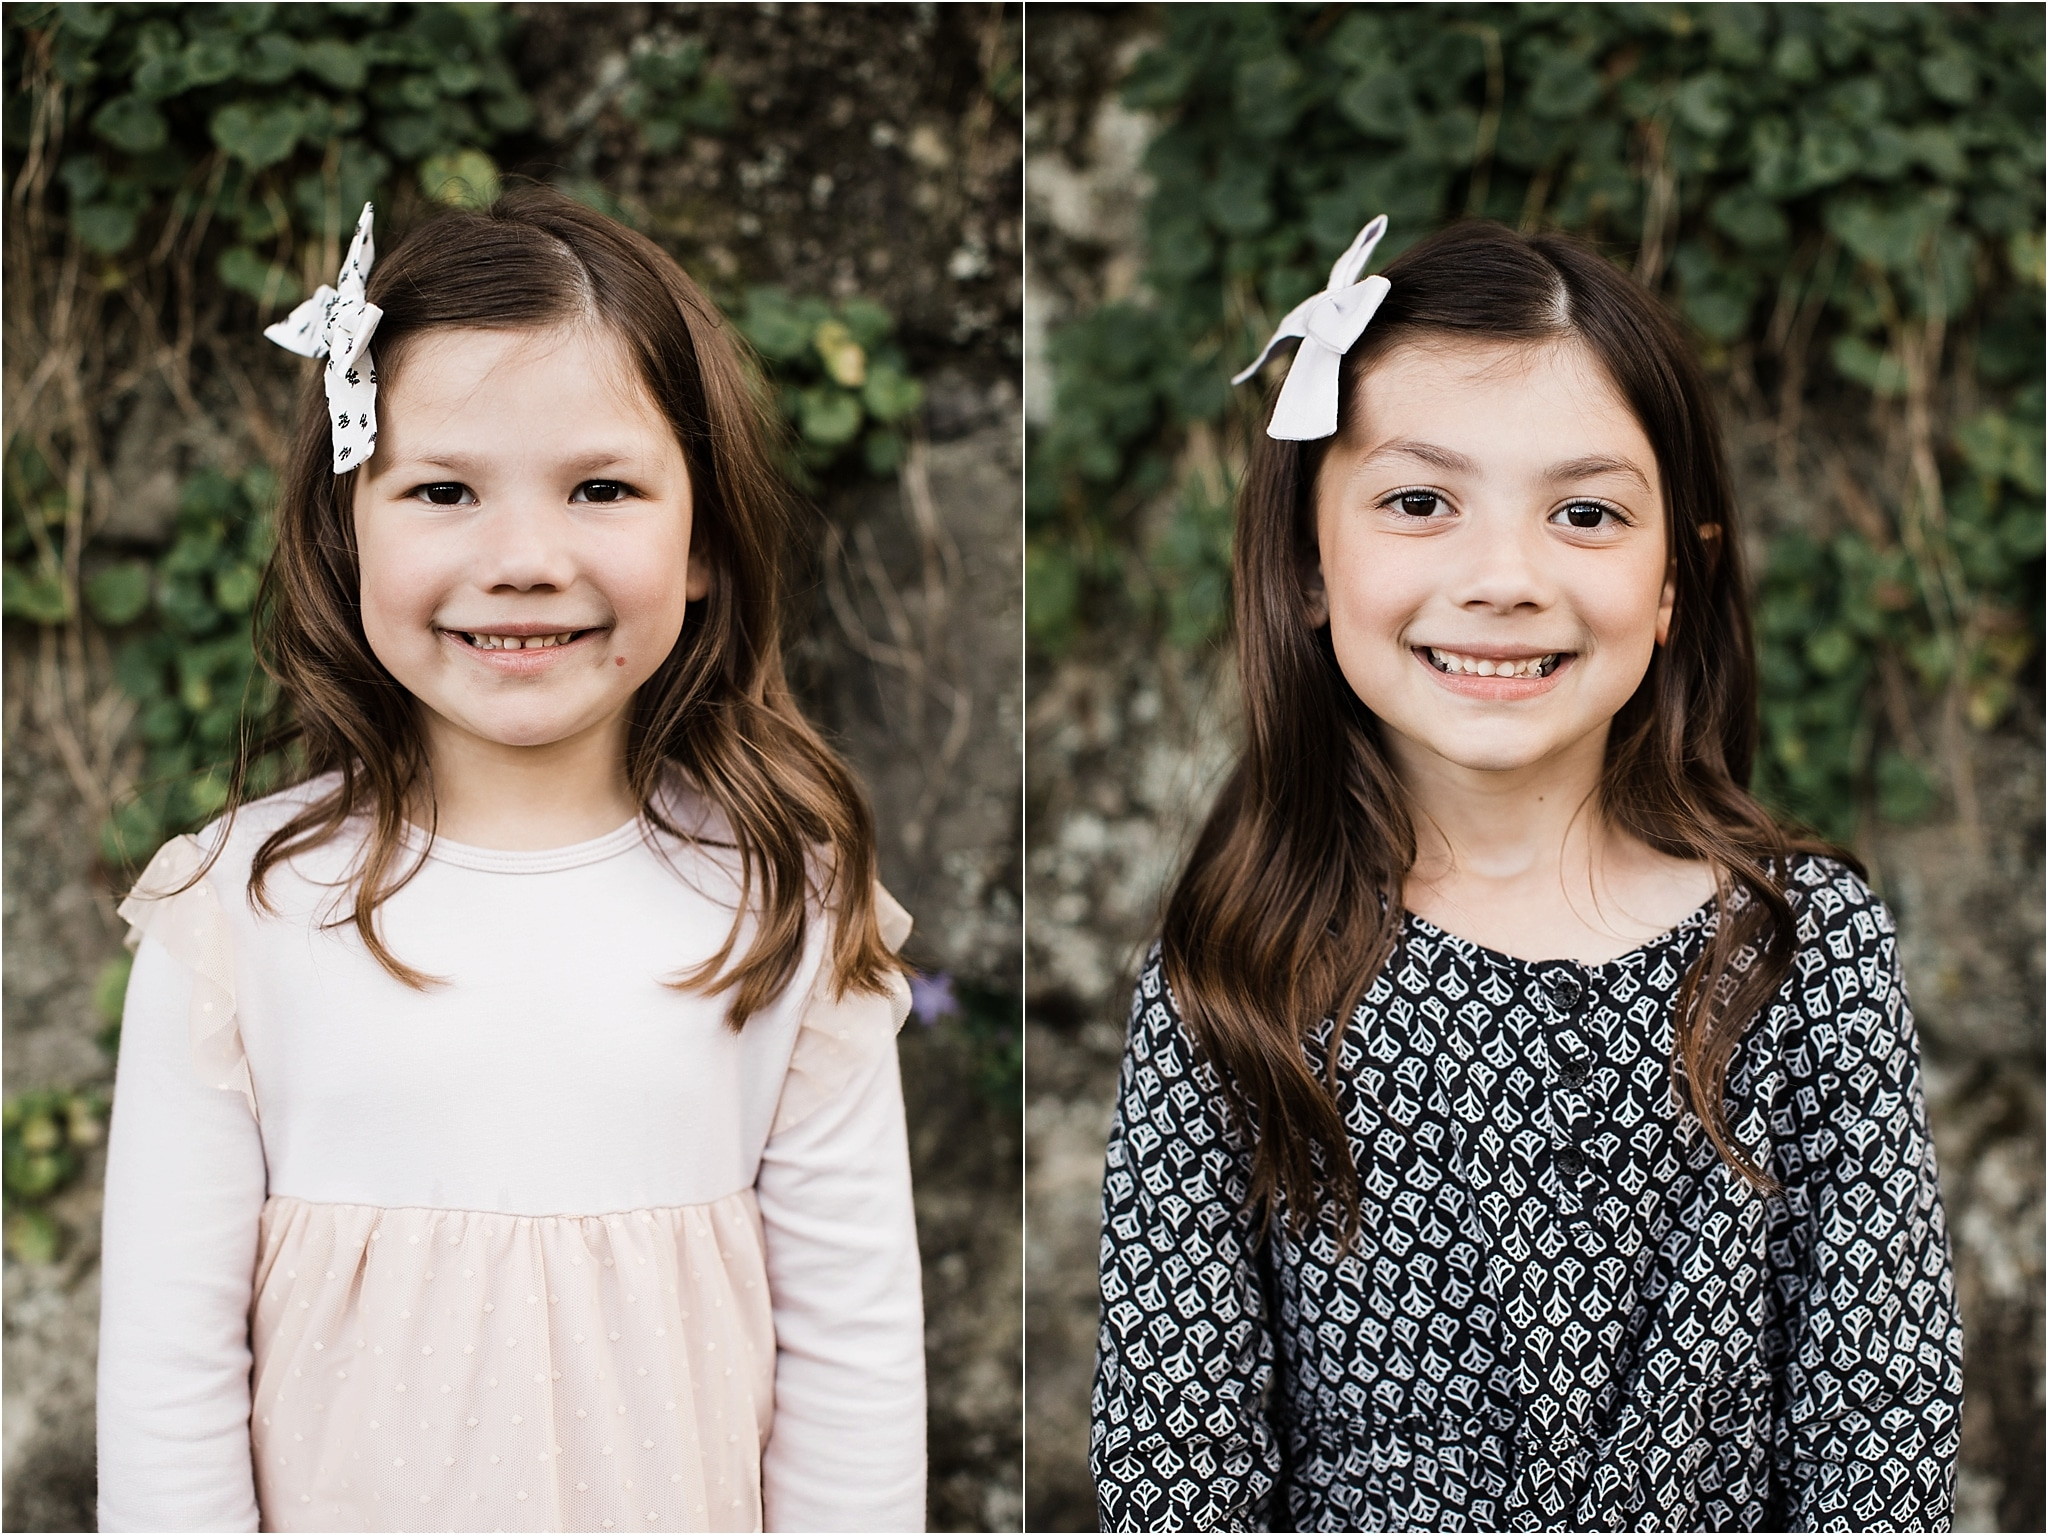 Portraits of sisters